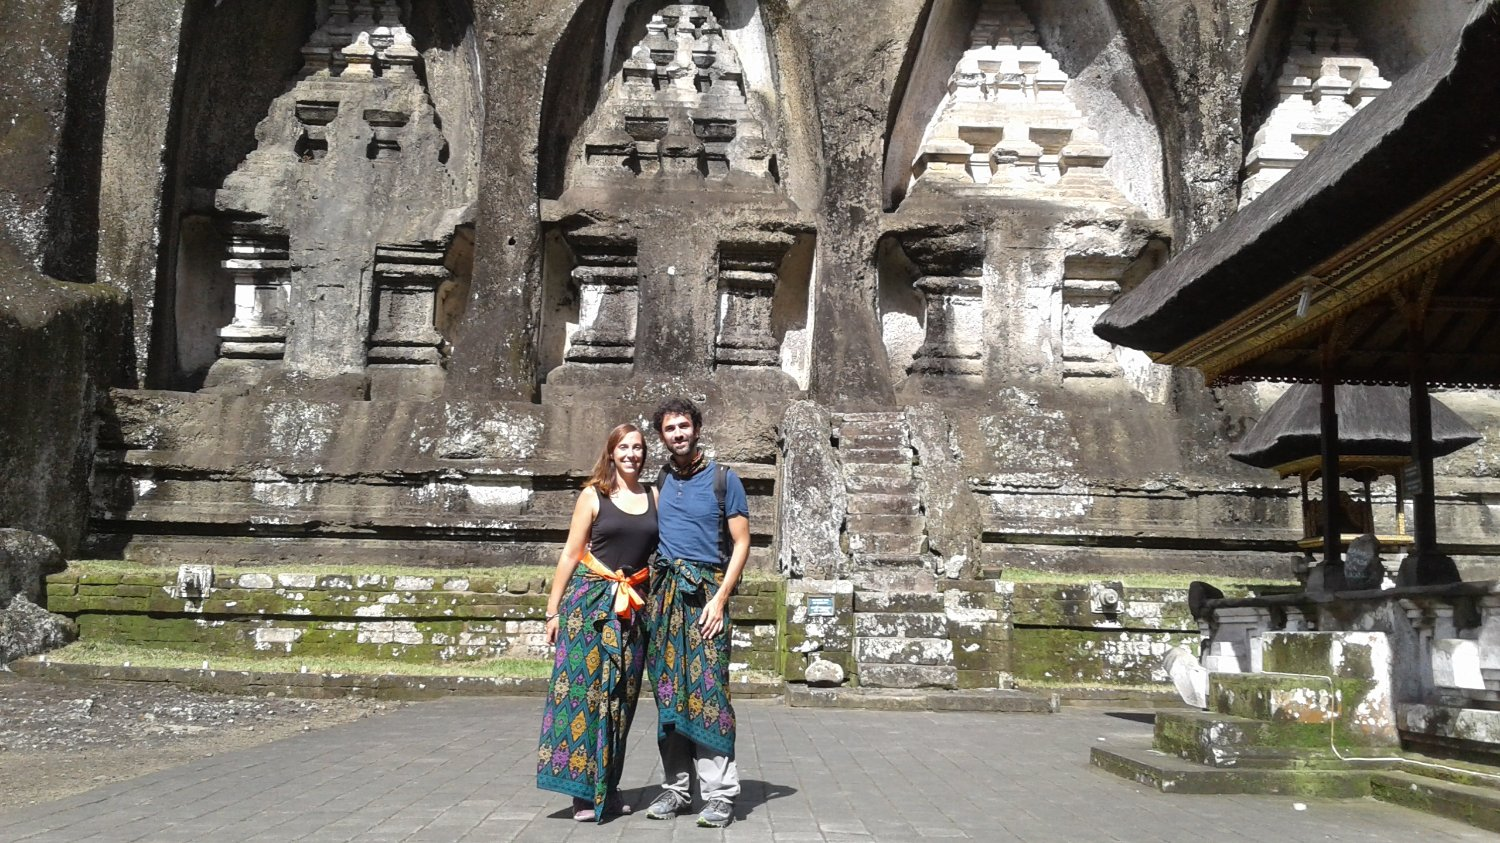 Gunung Kawi The Cliff Temple In Tampak Siring Bali